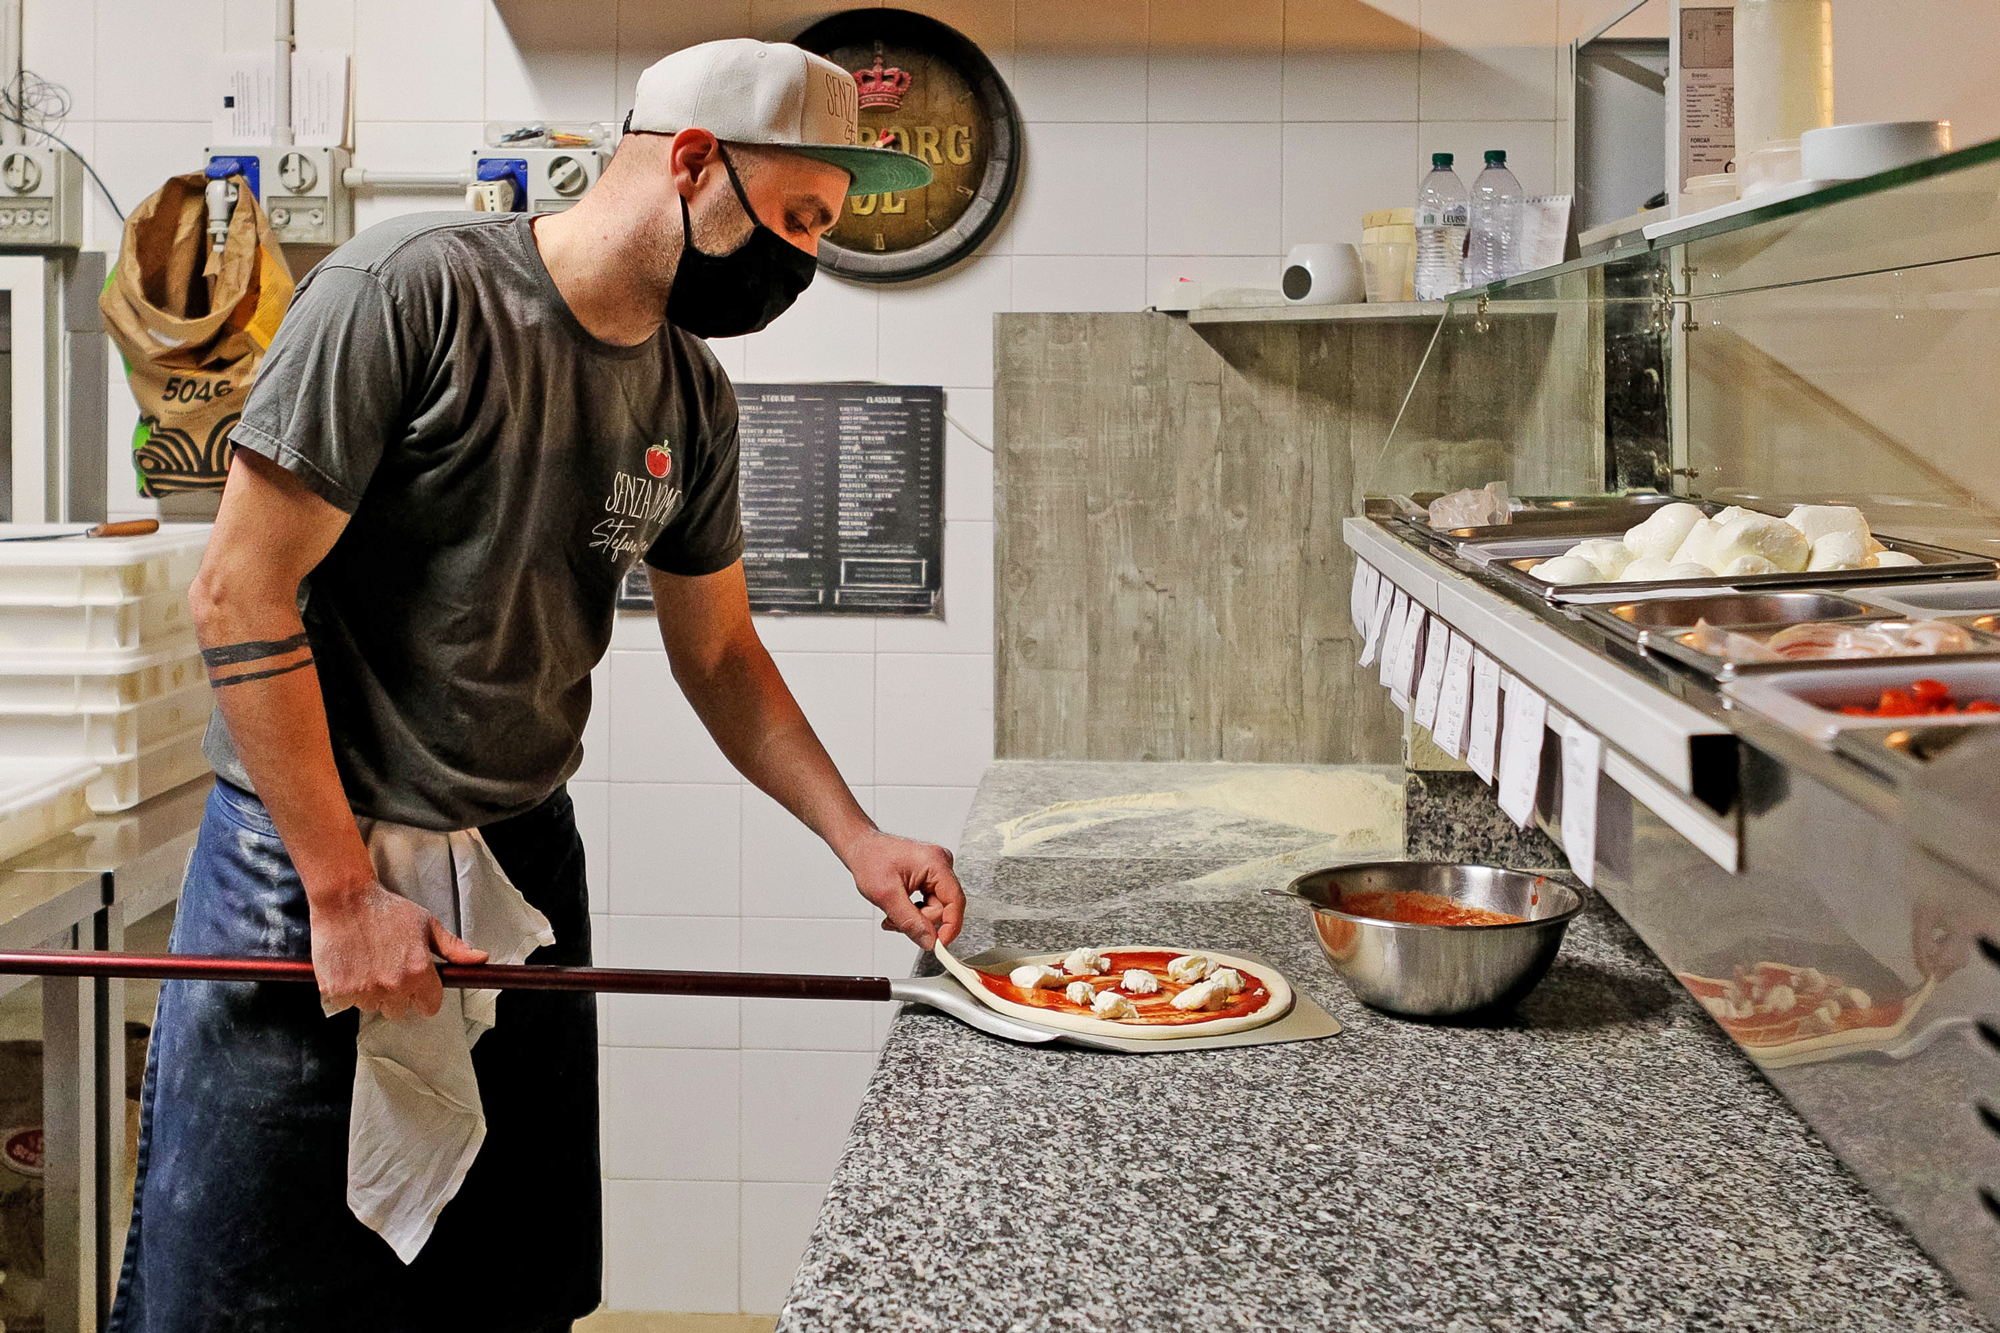 Italy's Restaurants Protest New Social Distancing Measures